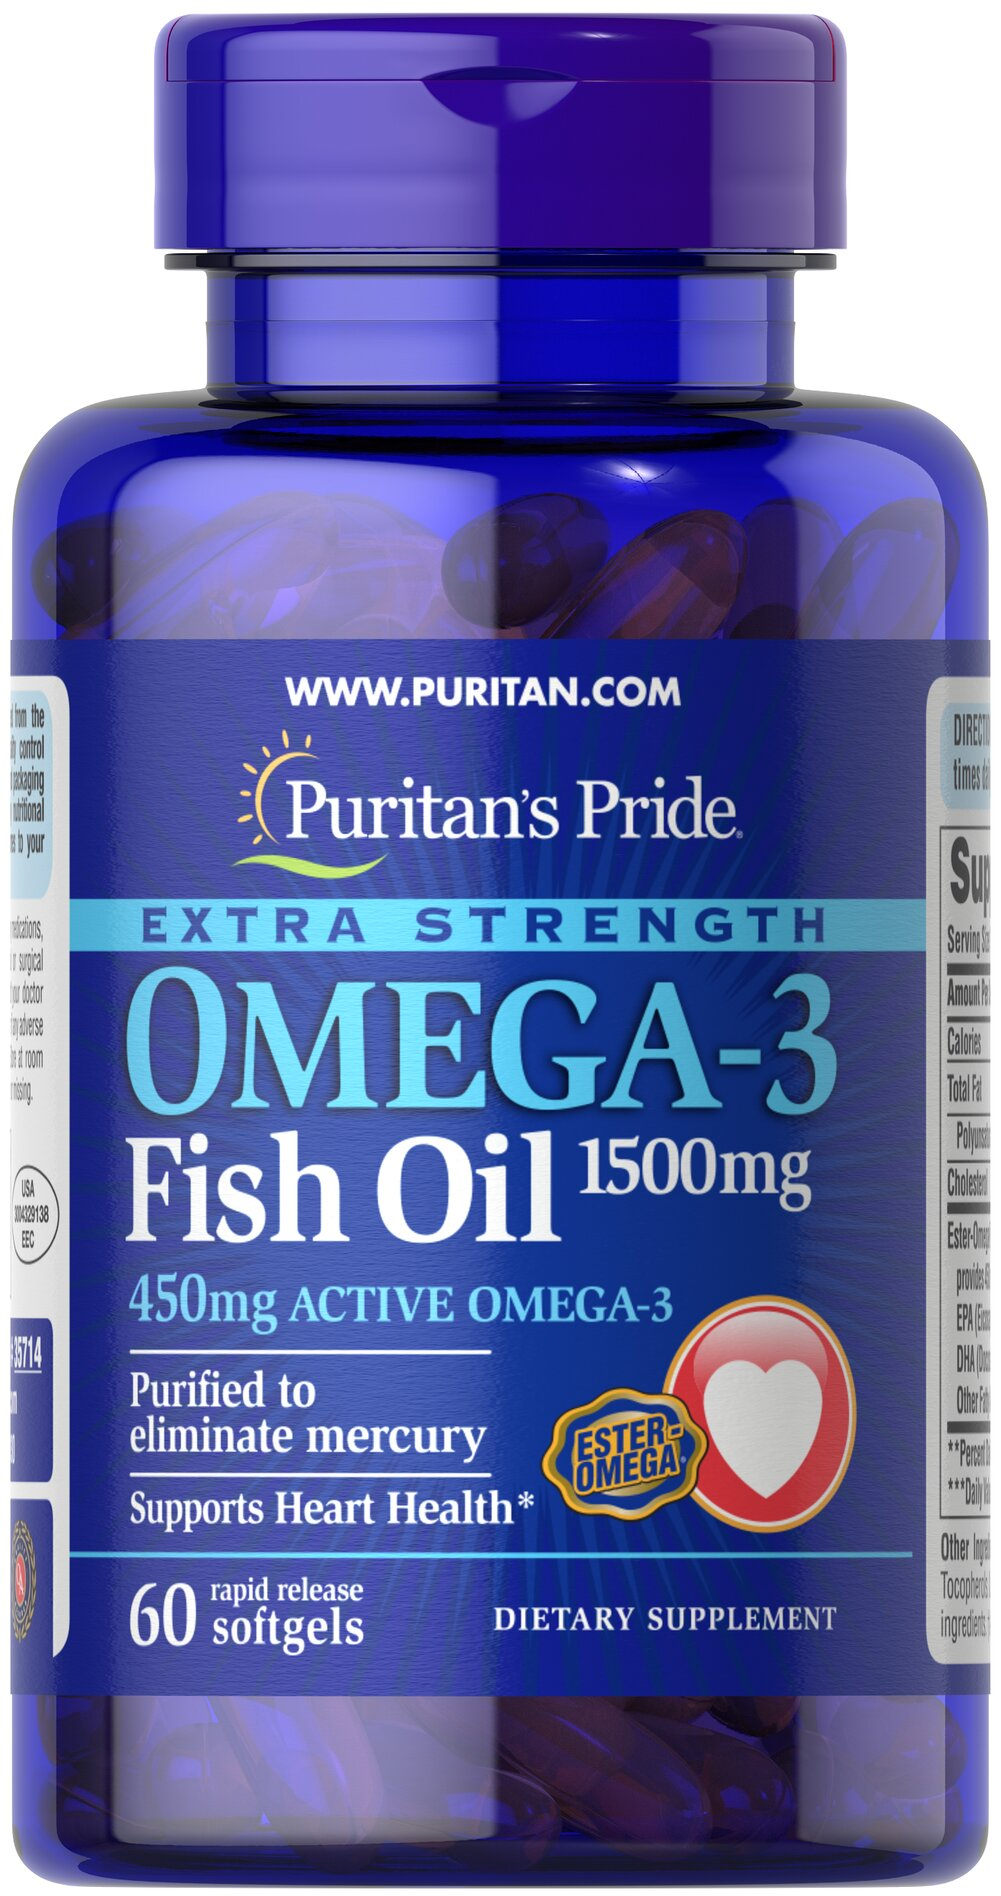 Extra Strength Omega-3 Fish Oil 1500 mg (450 mg Active Omega-3) <p><strong>Purified to Eliminate Mercury</strong></p><p>Super Potency 1500 mg  in one softgel!</p><p>Contains 450 mg of active Omega-3 per softgel.</p><p>Features fish oil in rapid-release softgels with enhanced potency and superior absorption.**</p> 60 Softgels 1500 mg $14.39